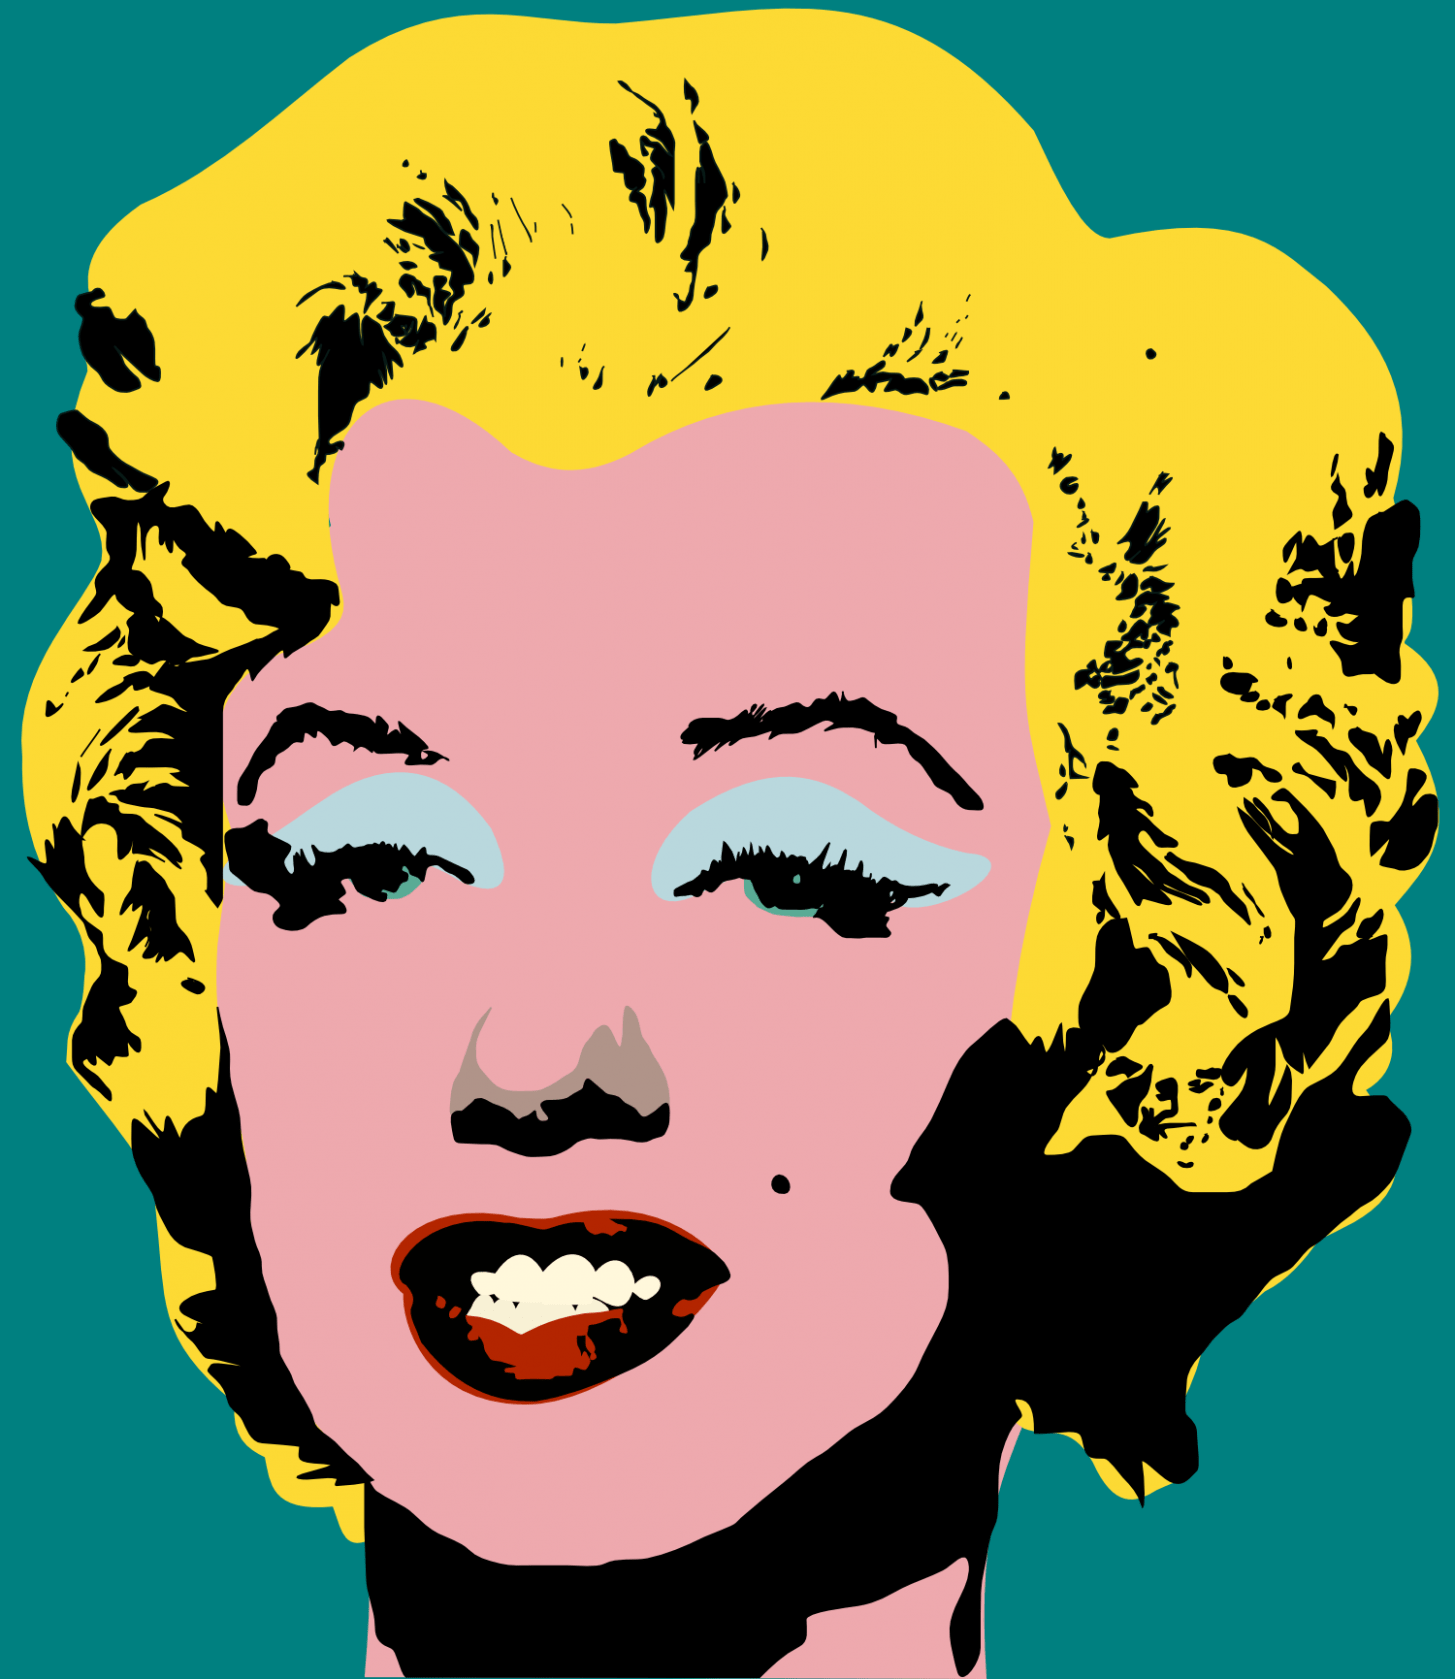 Works Of Andy Warhol And Some Facts About Pop Art.